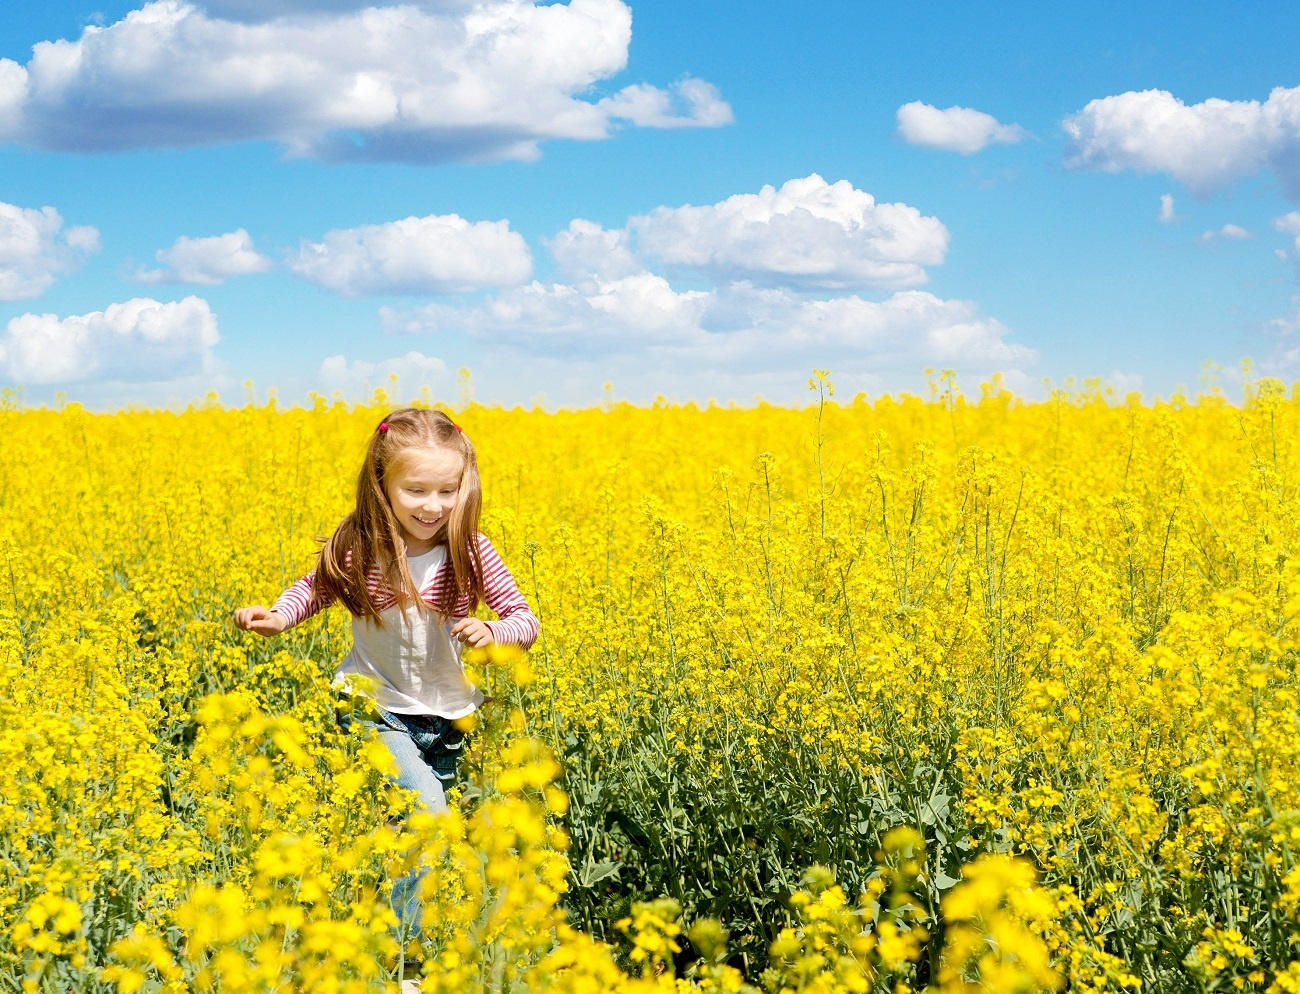 A young girl runs through a field of growing canola on the farm.